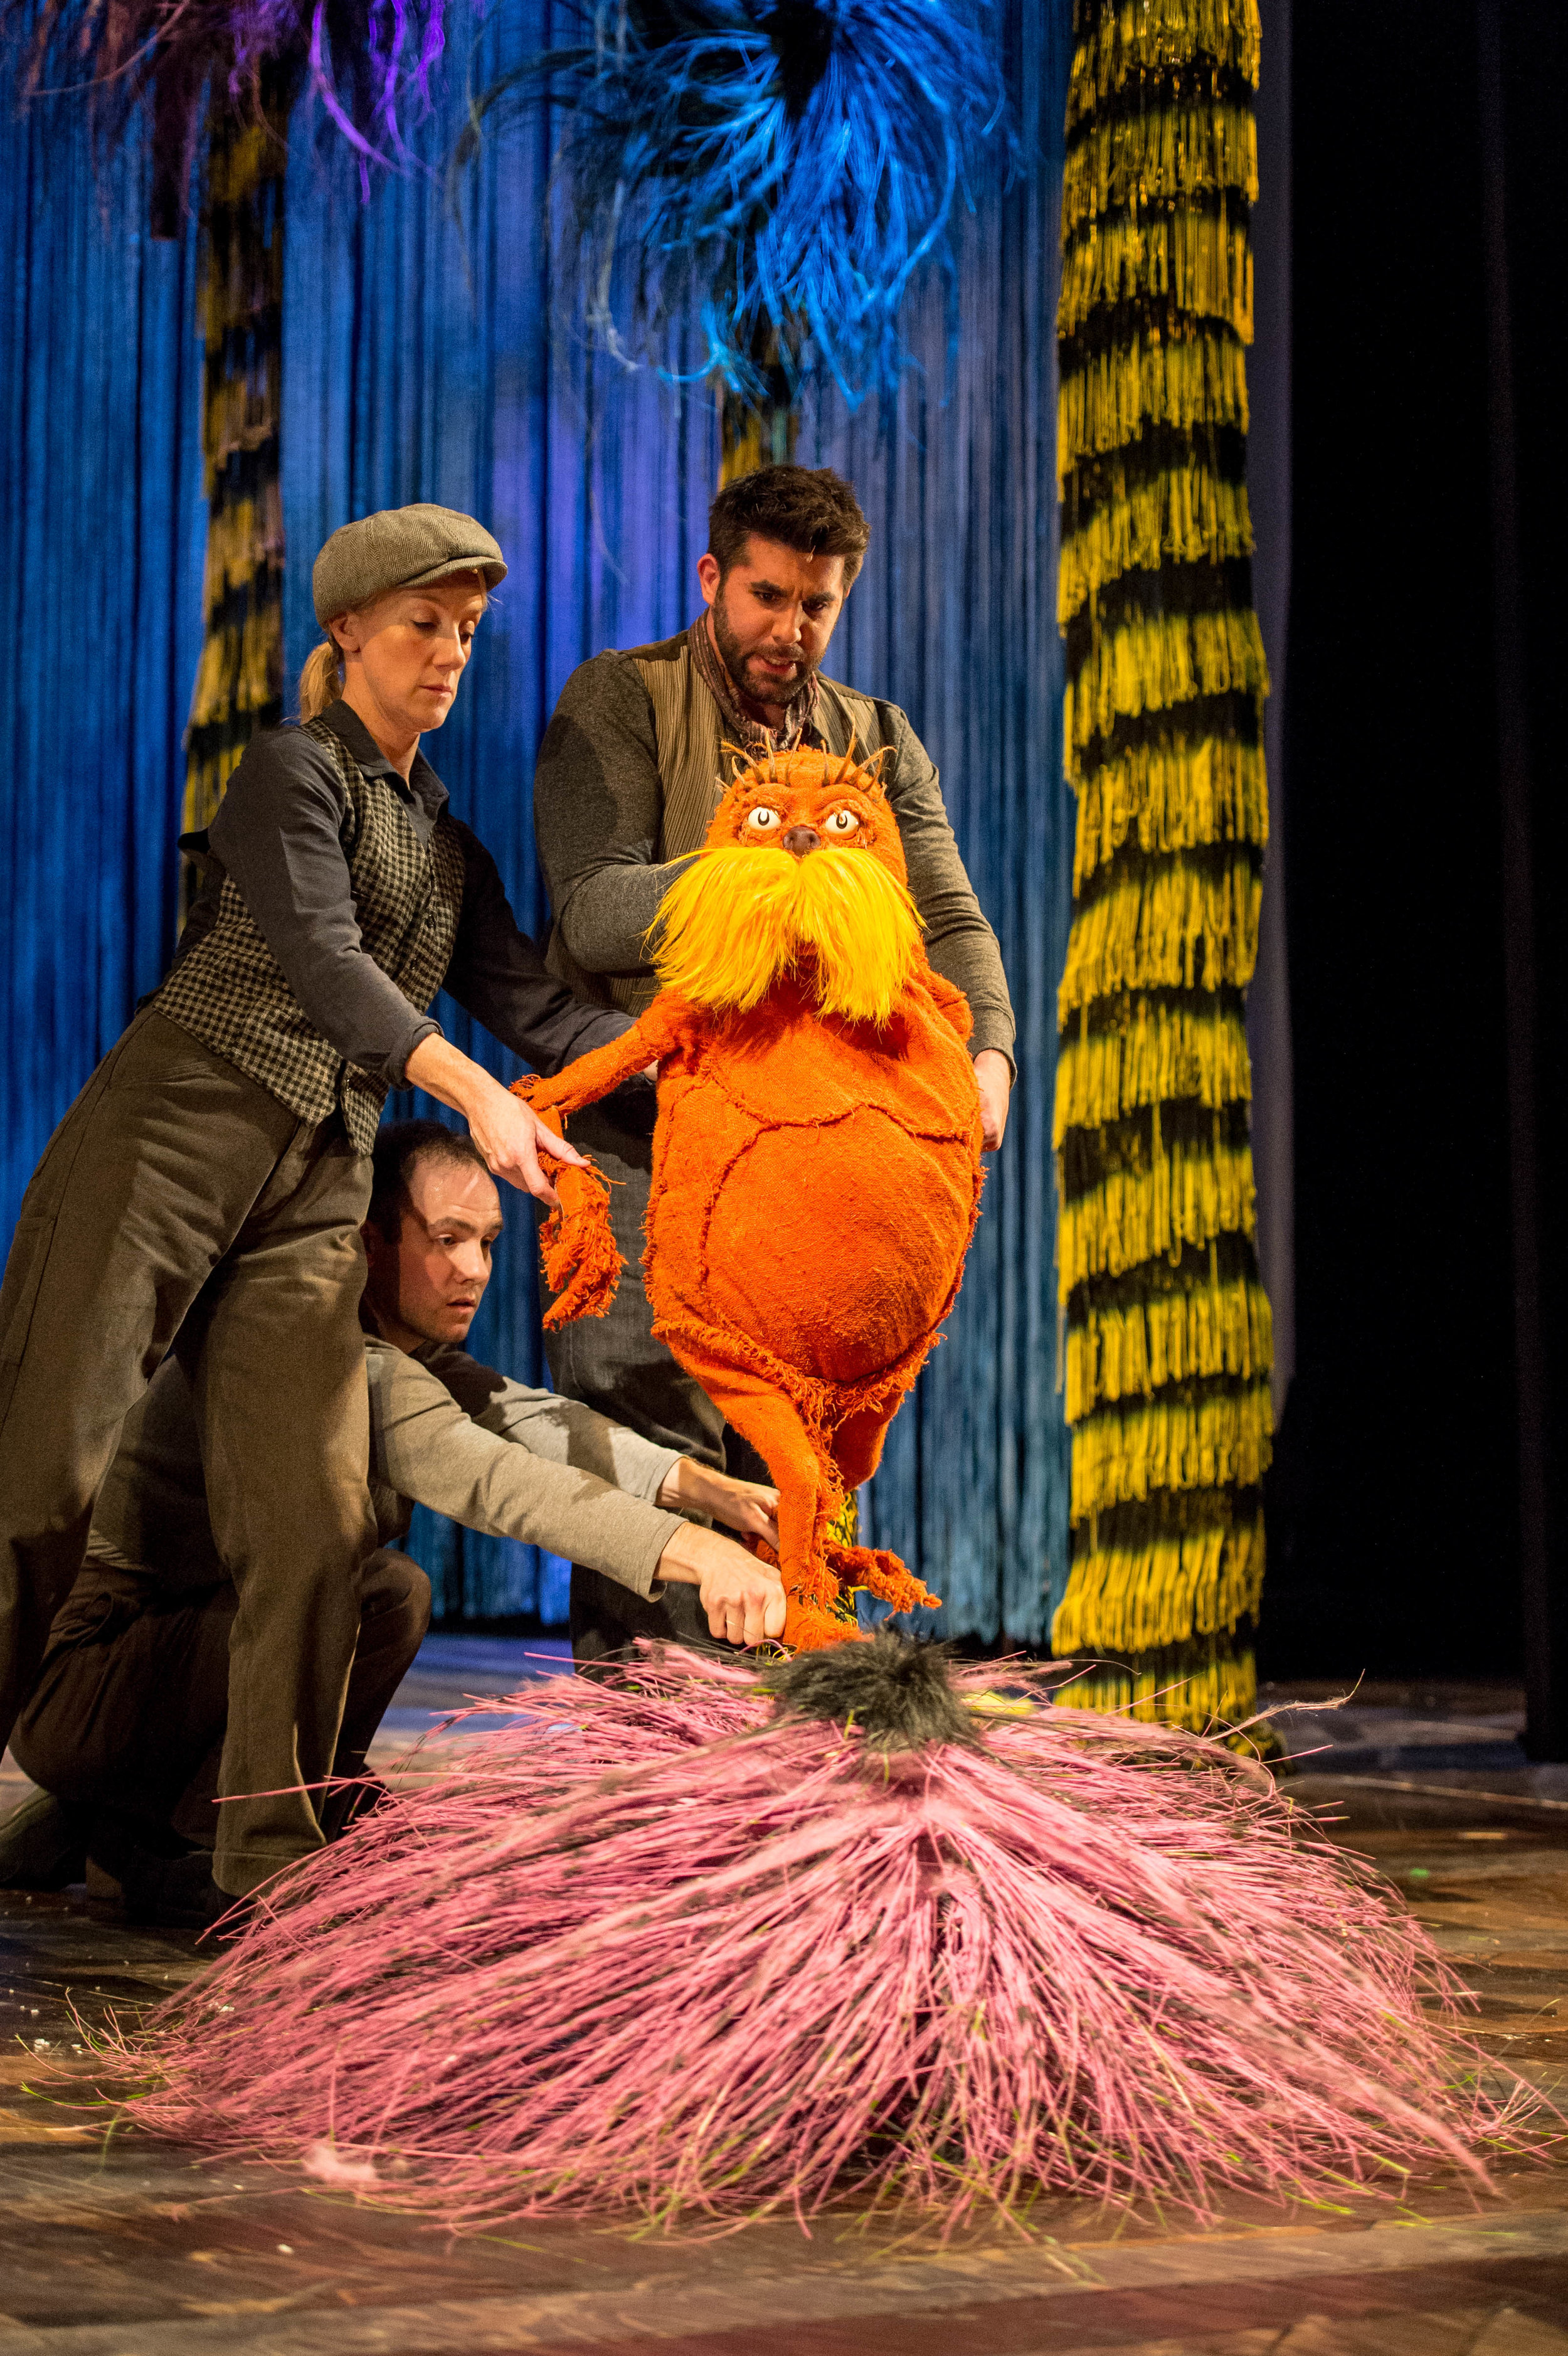 Laura-Cubitt-Puppeteer-Ben-Thompson-Puppeteer-and-Simon-Lipkin-The-Lorax-The-Lorax-at-The-Old-Vic.-Photos-by-Manuel-Harlan..jpg